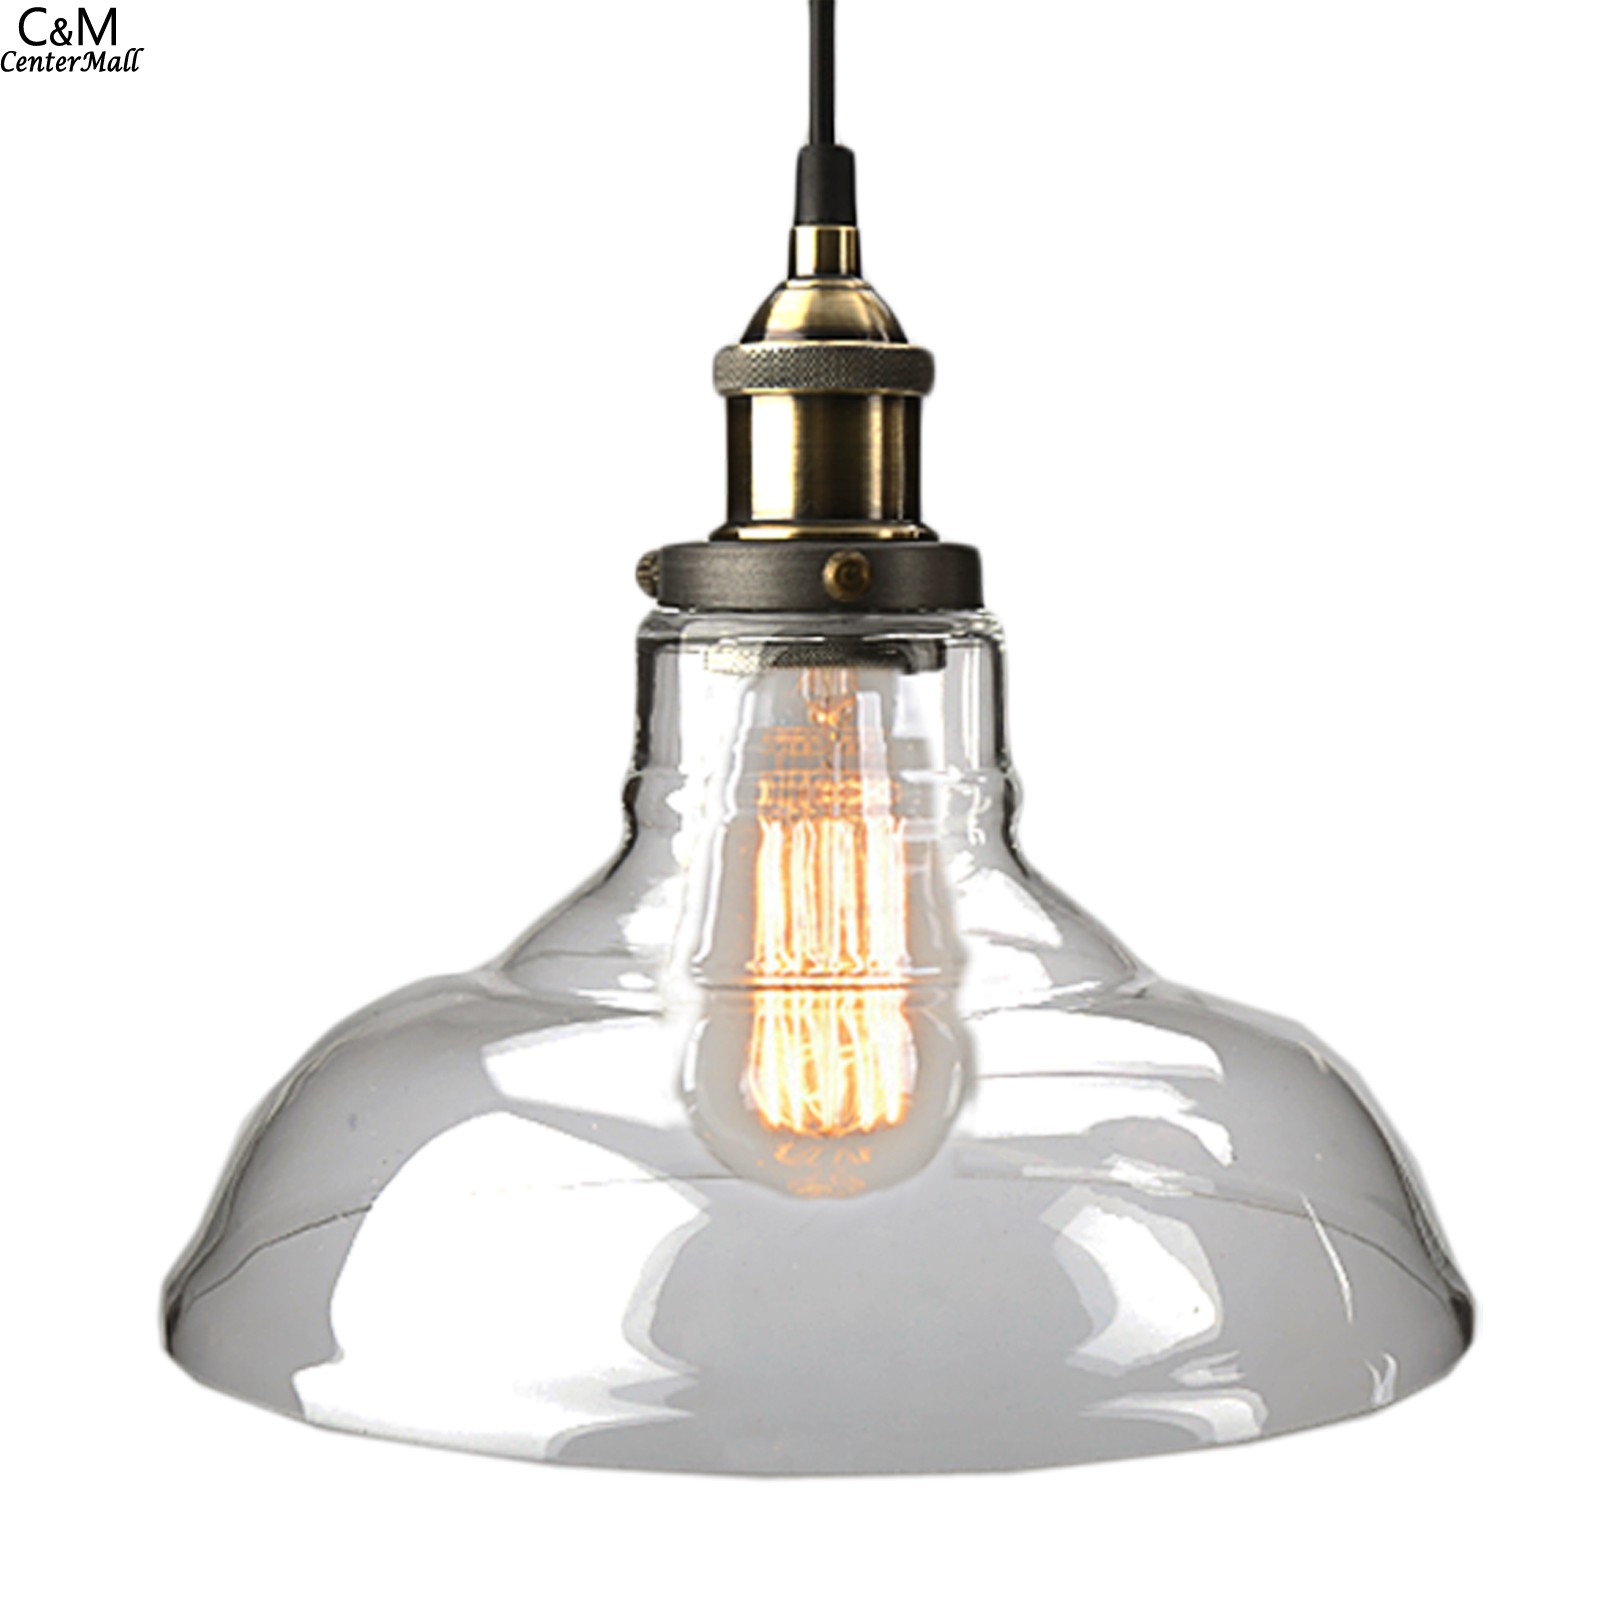 wire furniture brass bulb tif light vintage products sleek edison largeglobe pendant instrument so